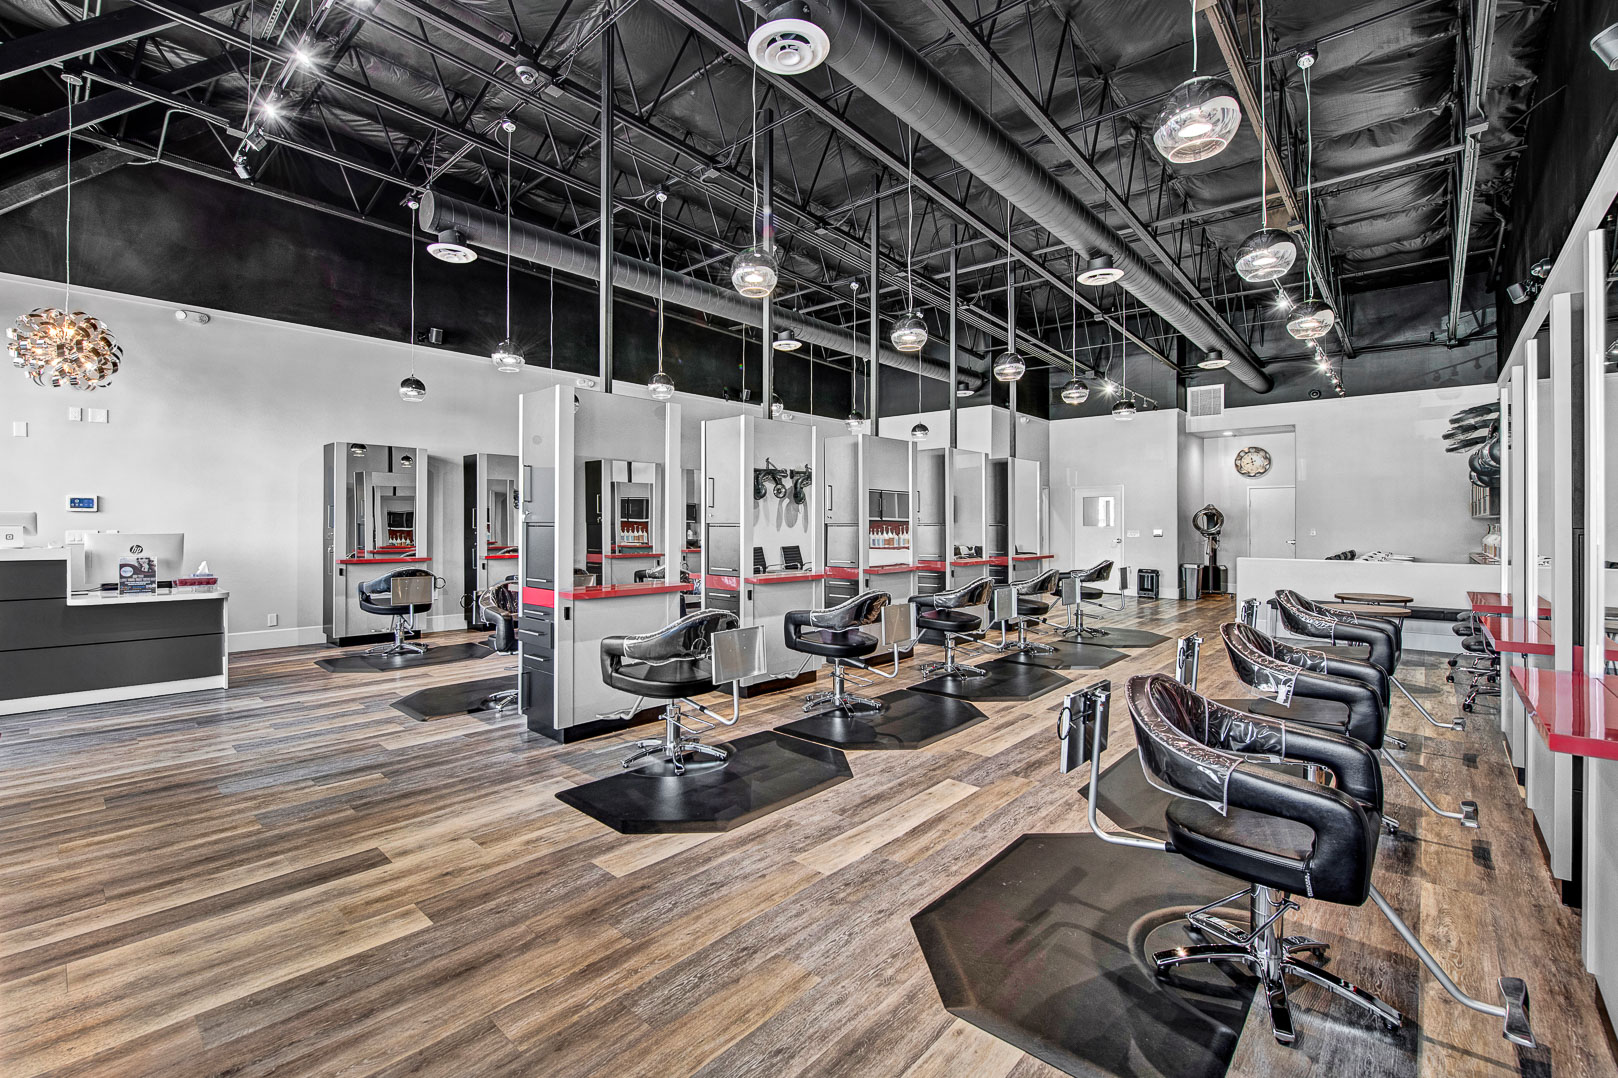 Stylists or Barber Rental in Newly Renovated Modern Salon